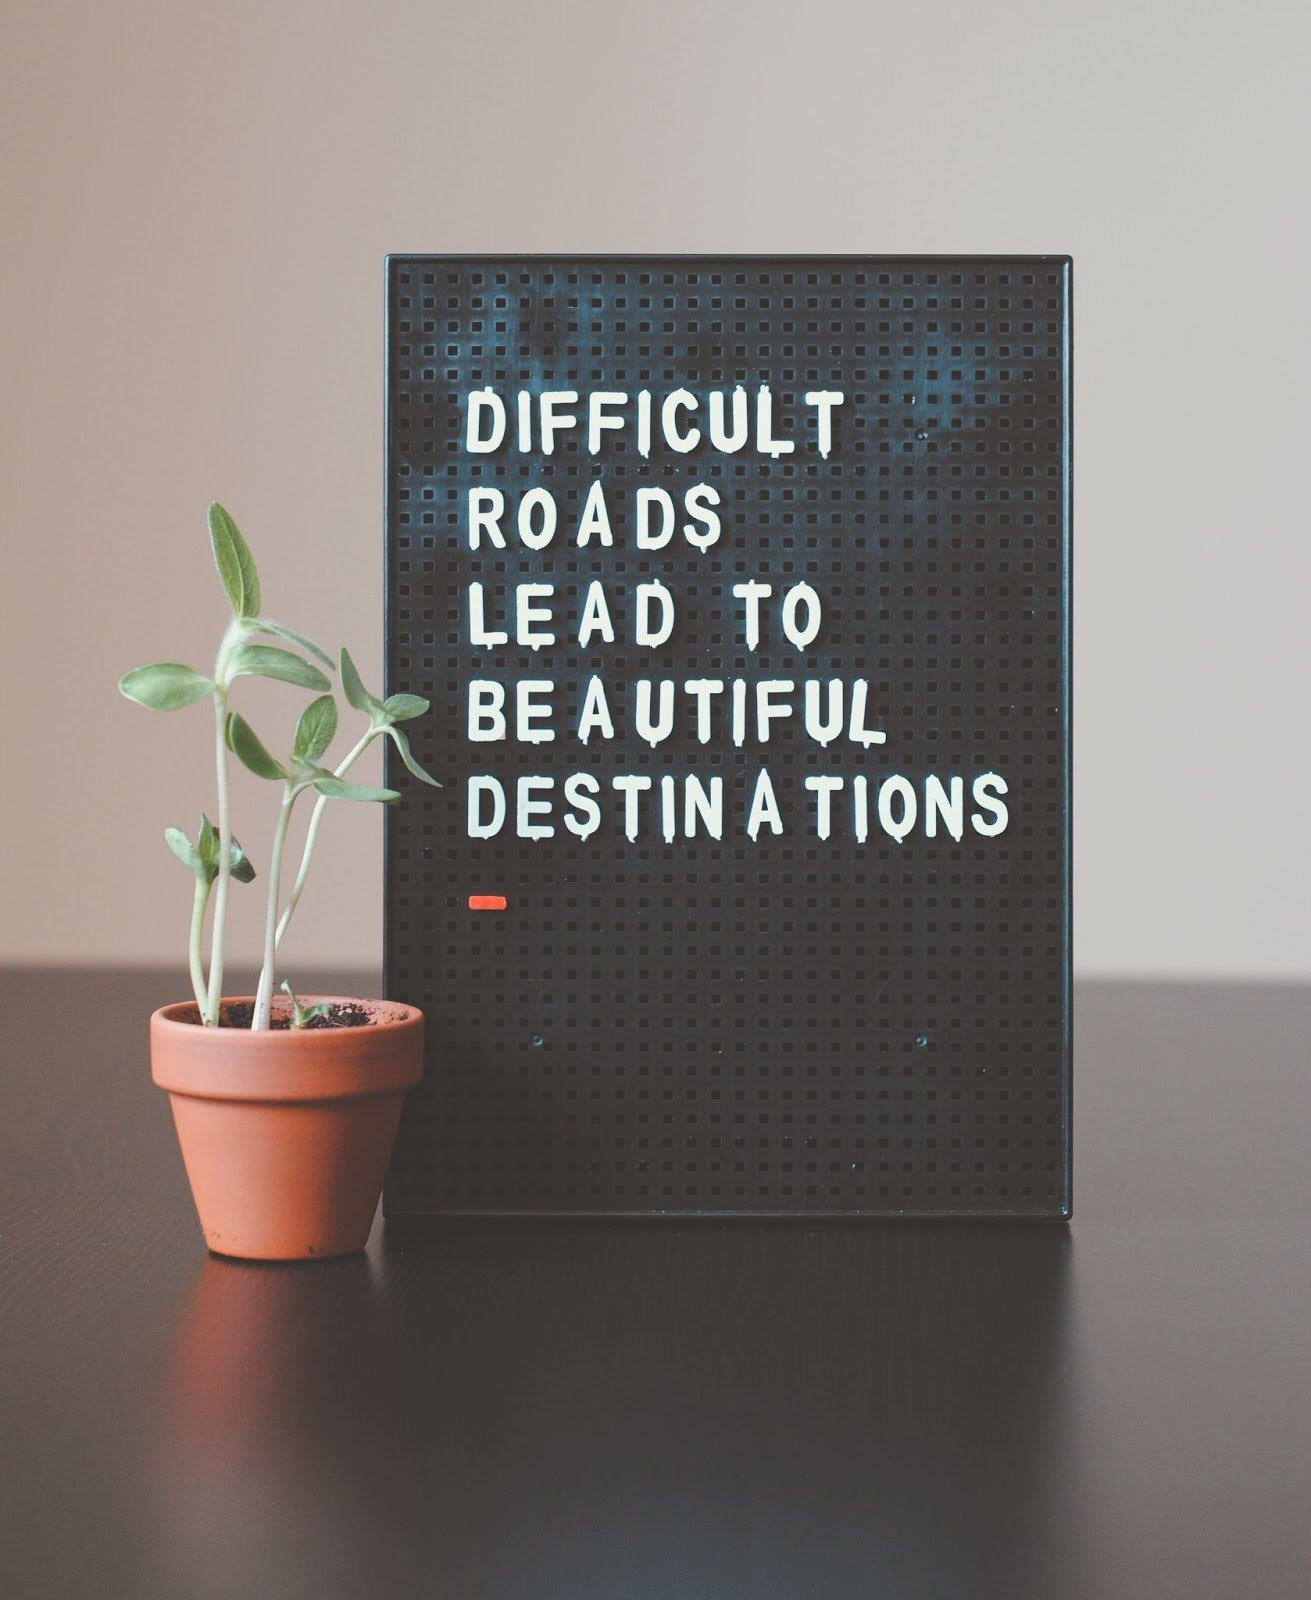 Difficult roads lead to beautiful destinations picture